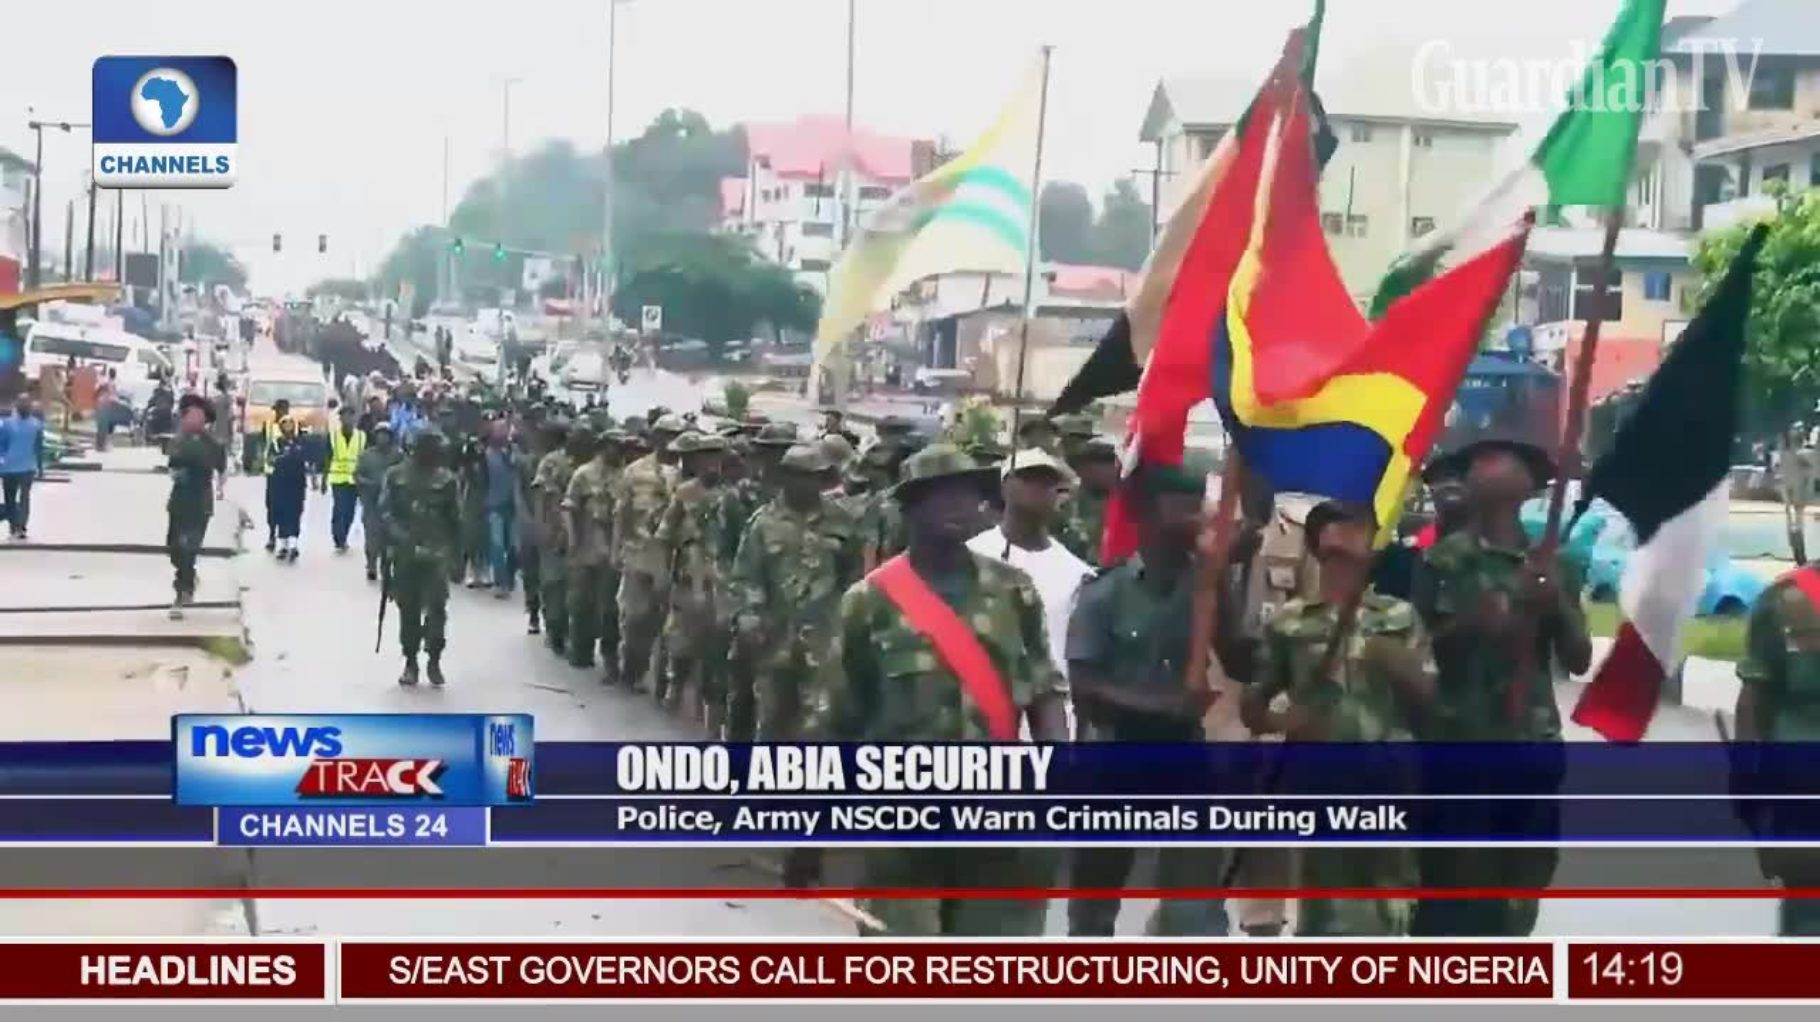 Police, Army, NSCDC warn criminals during walk » Guardian TV